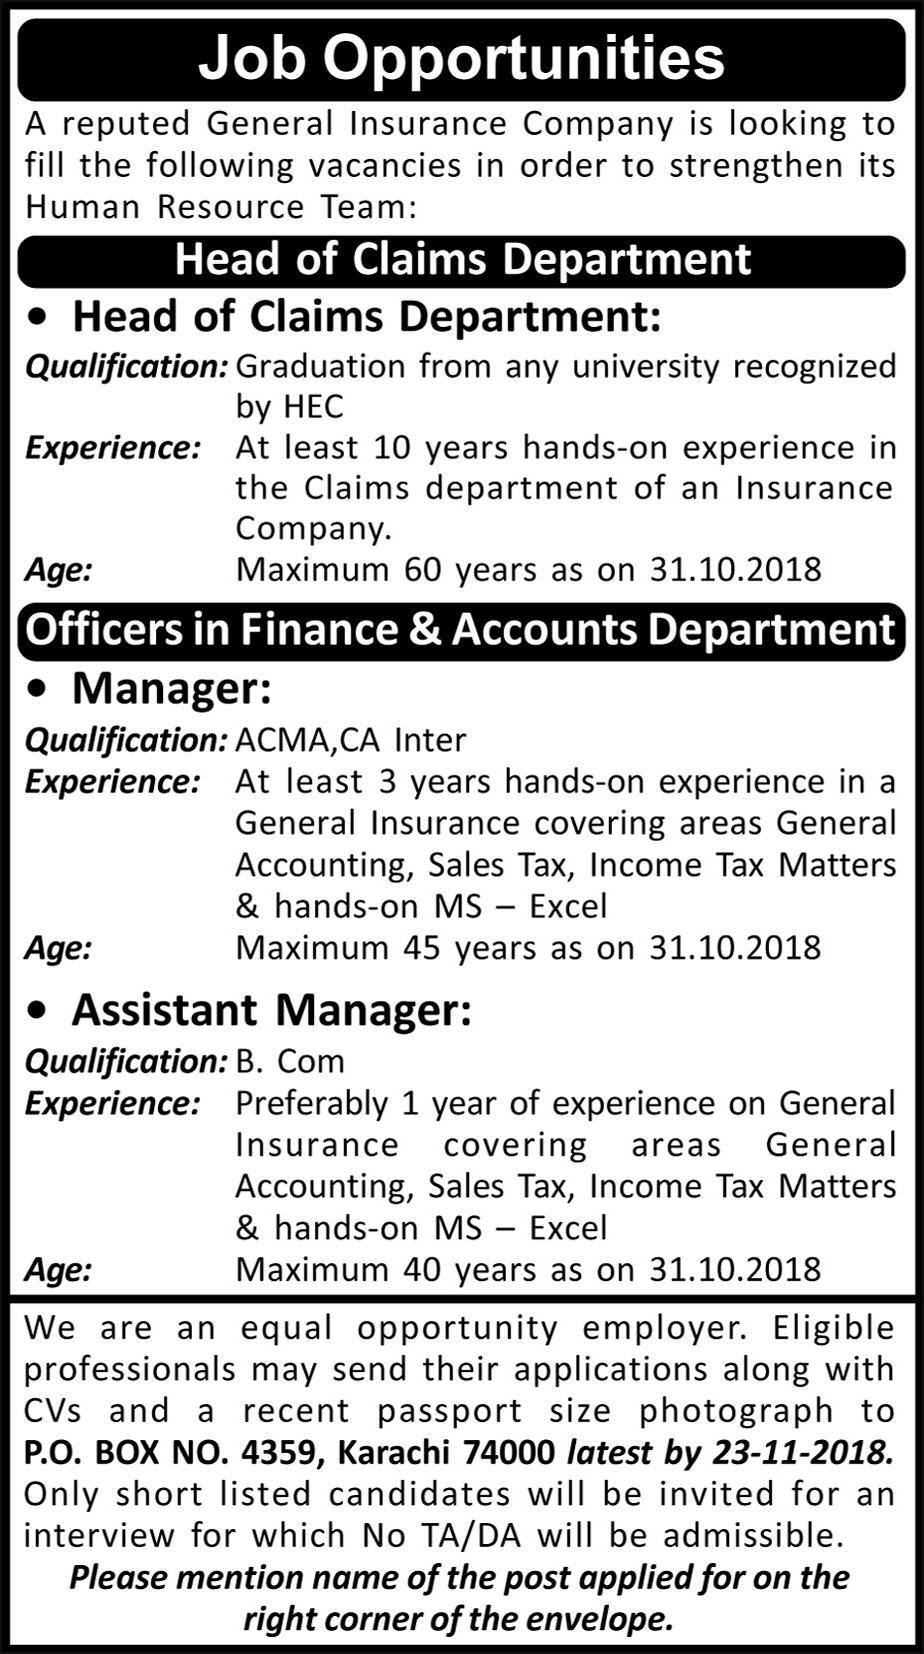 General Insurance Company Head of Chief Cliam Department Job